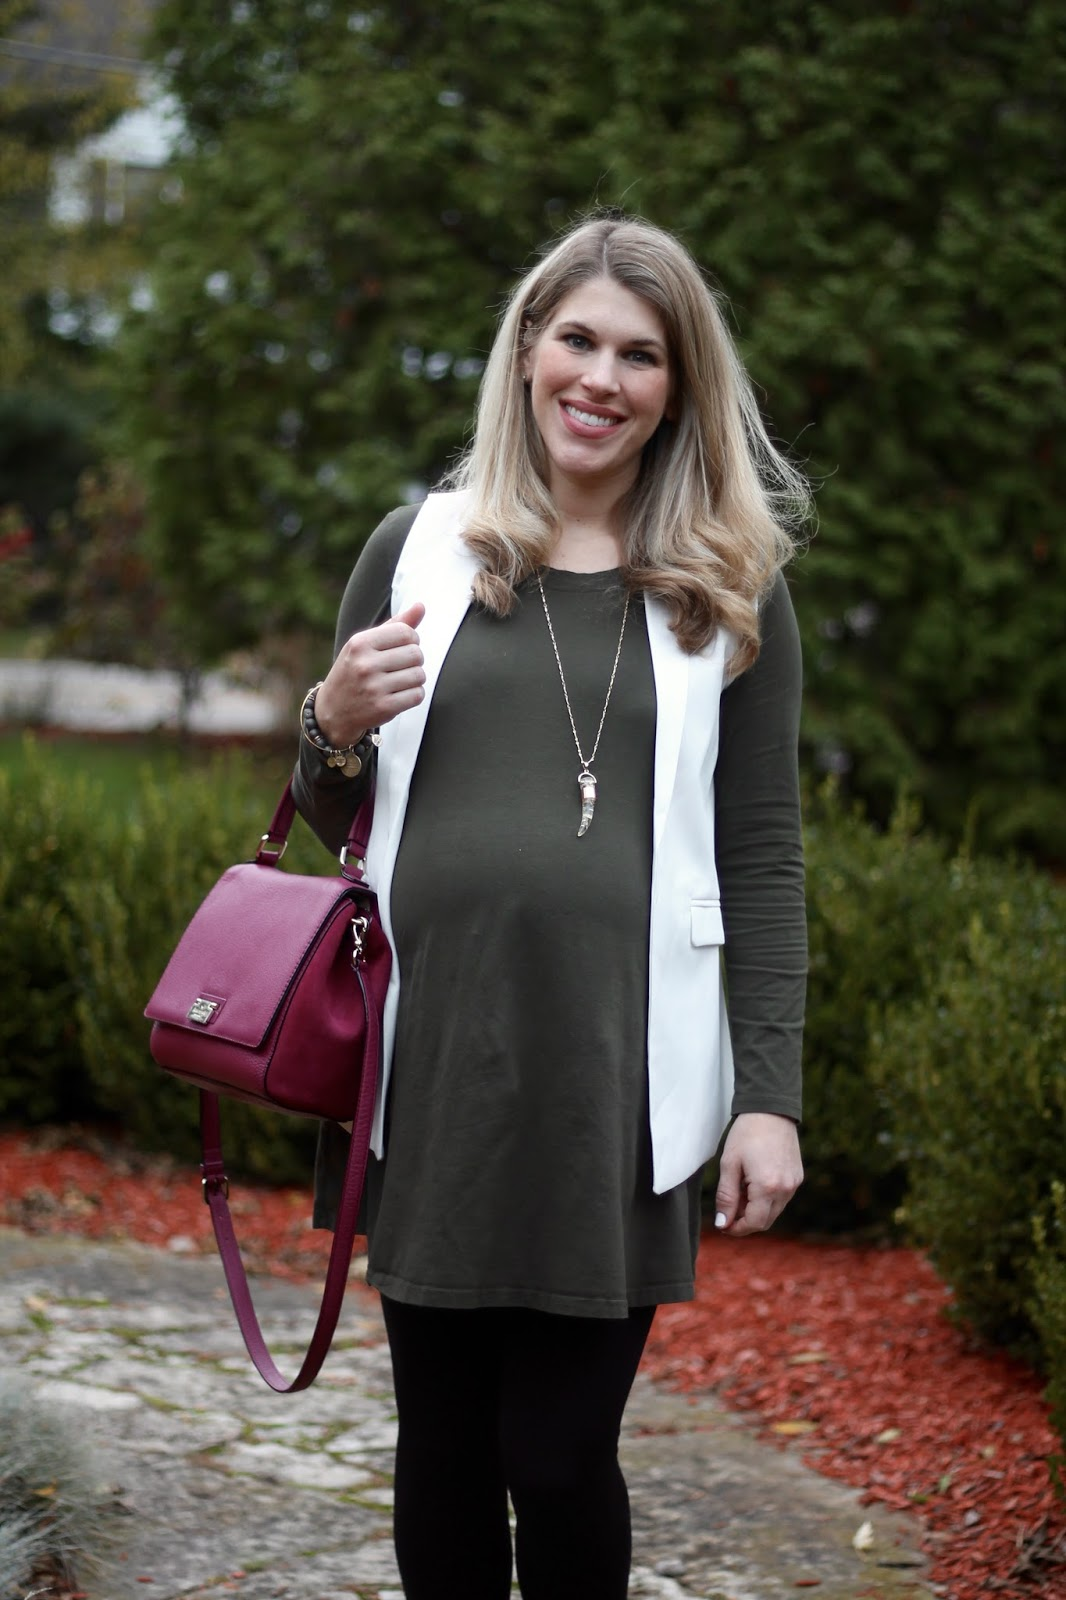 olive dress, black leggings, white sleeveless blazer, plum Kate Spade bag, taupe booties, fall maternity outfit